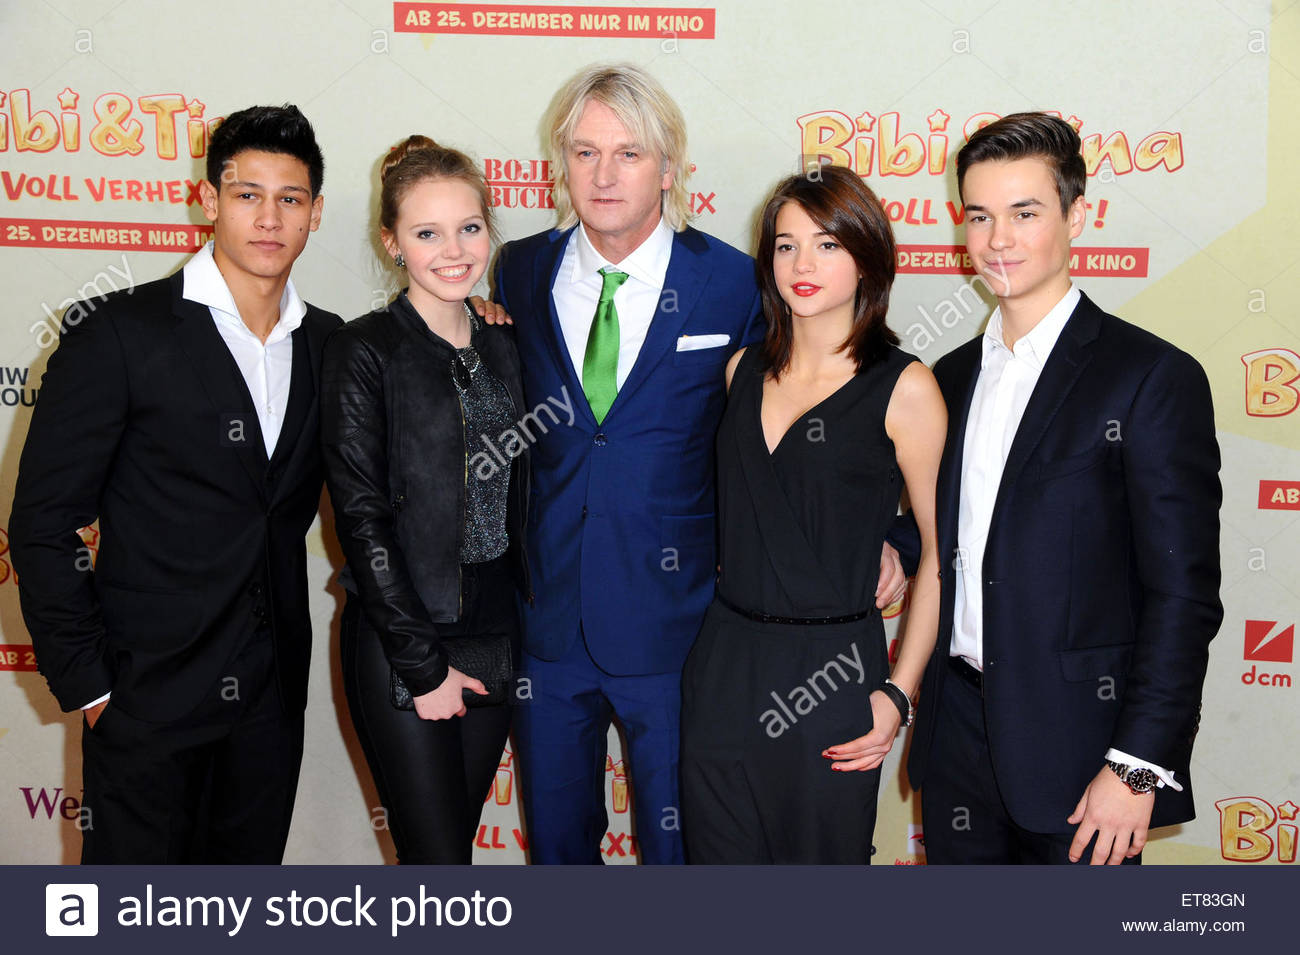 Zoo Palast Roter Teppich World Premiere Of 39bibi Und Tina Voll Verhext 39 At Zoo